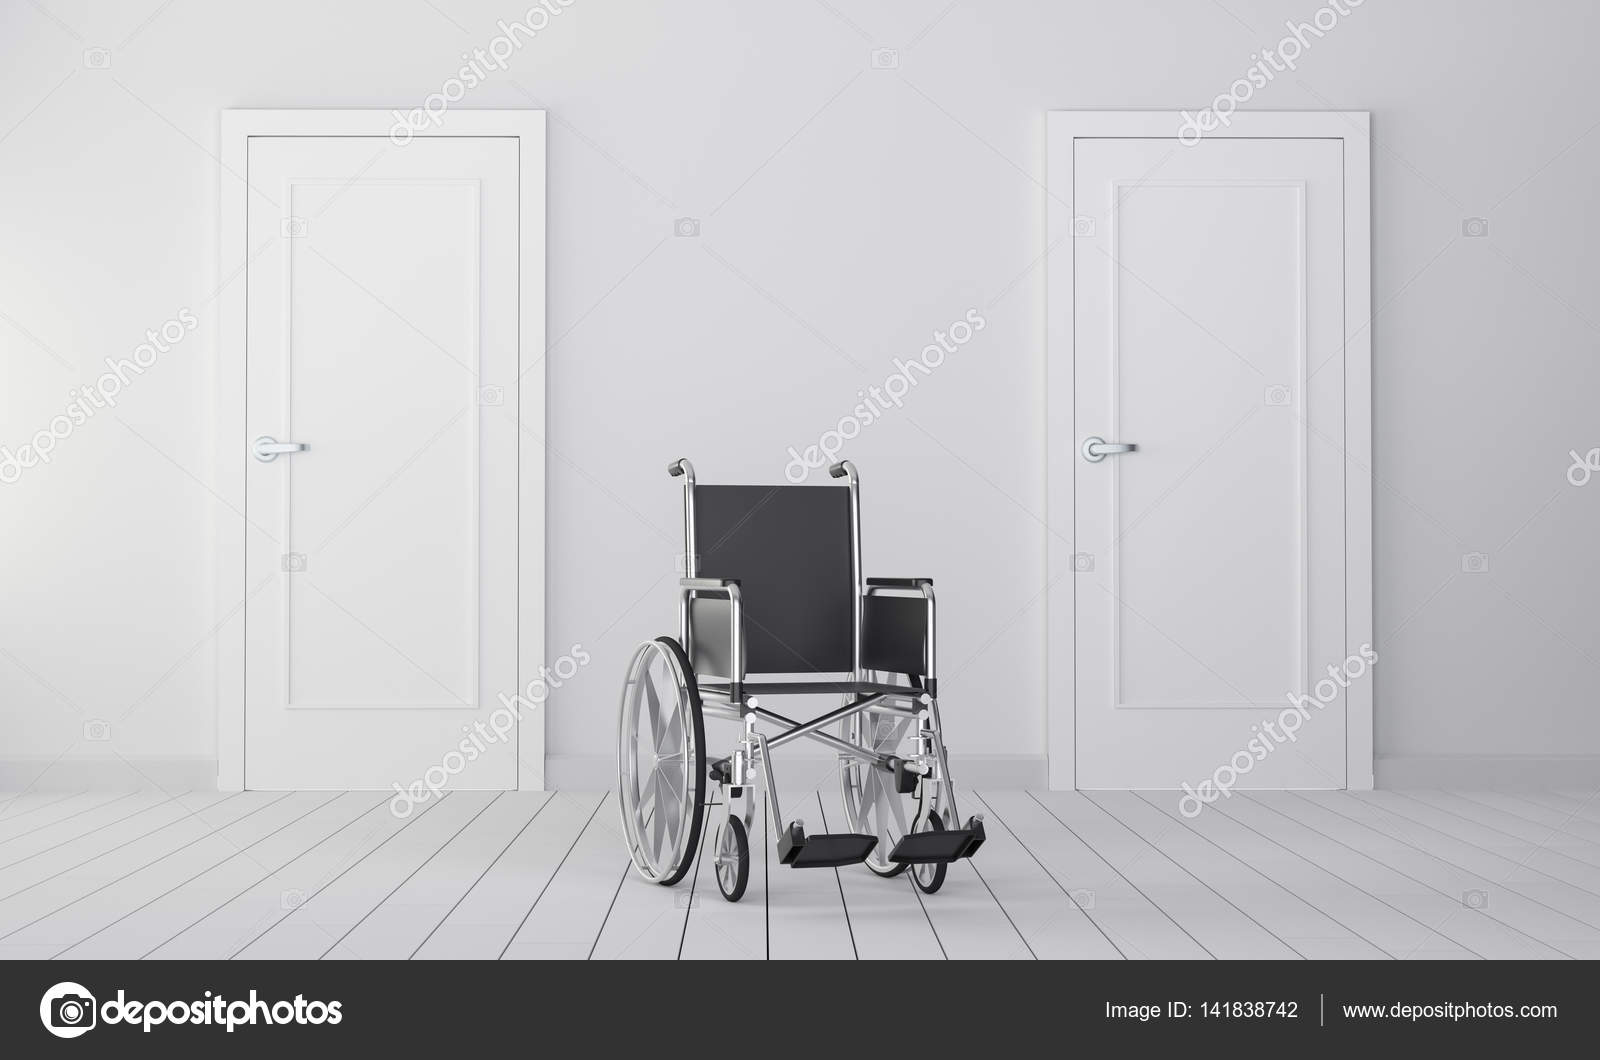 Wheelchair in room with two closed door u2014 Stock Photo & Wheelchair in room with two closed door u2014 Stock Photo © cherezoff ...